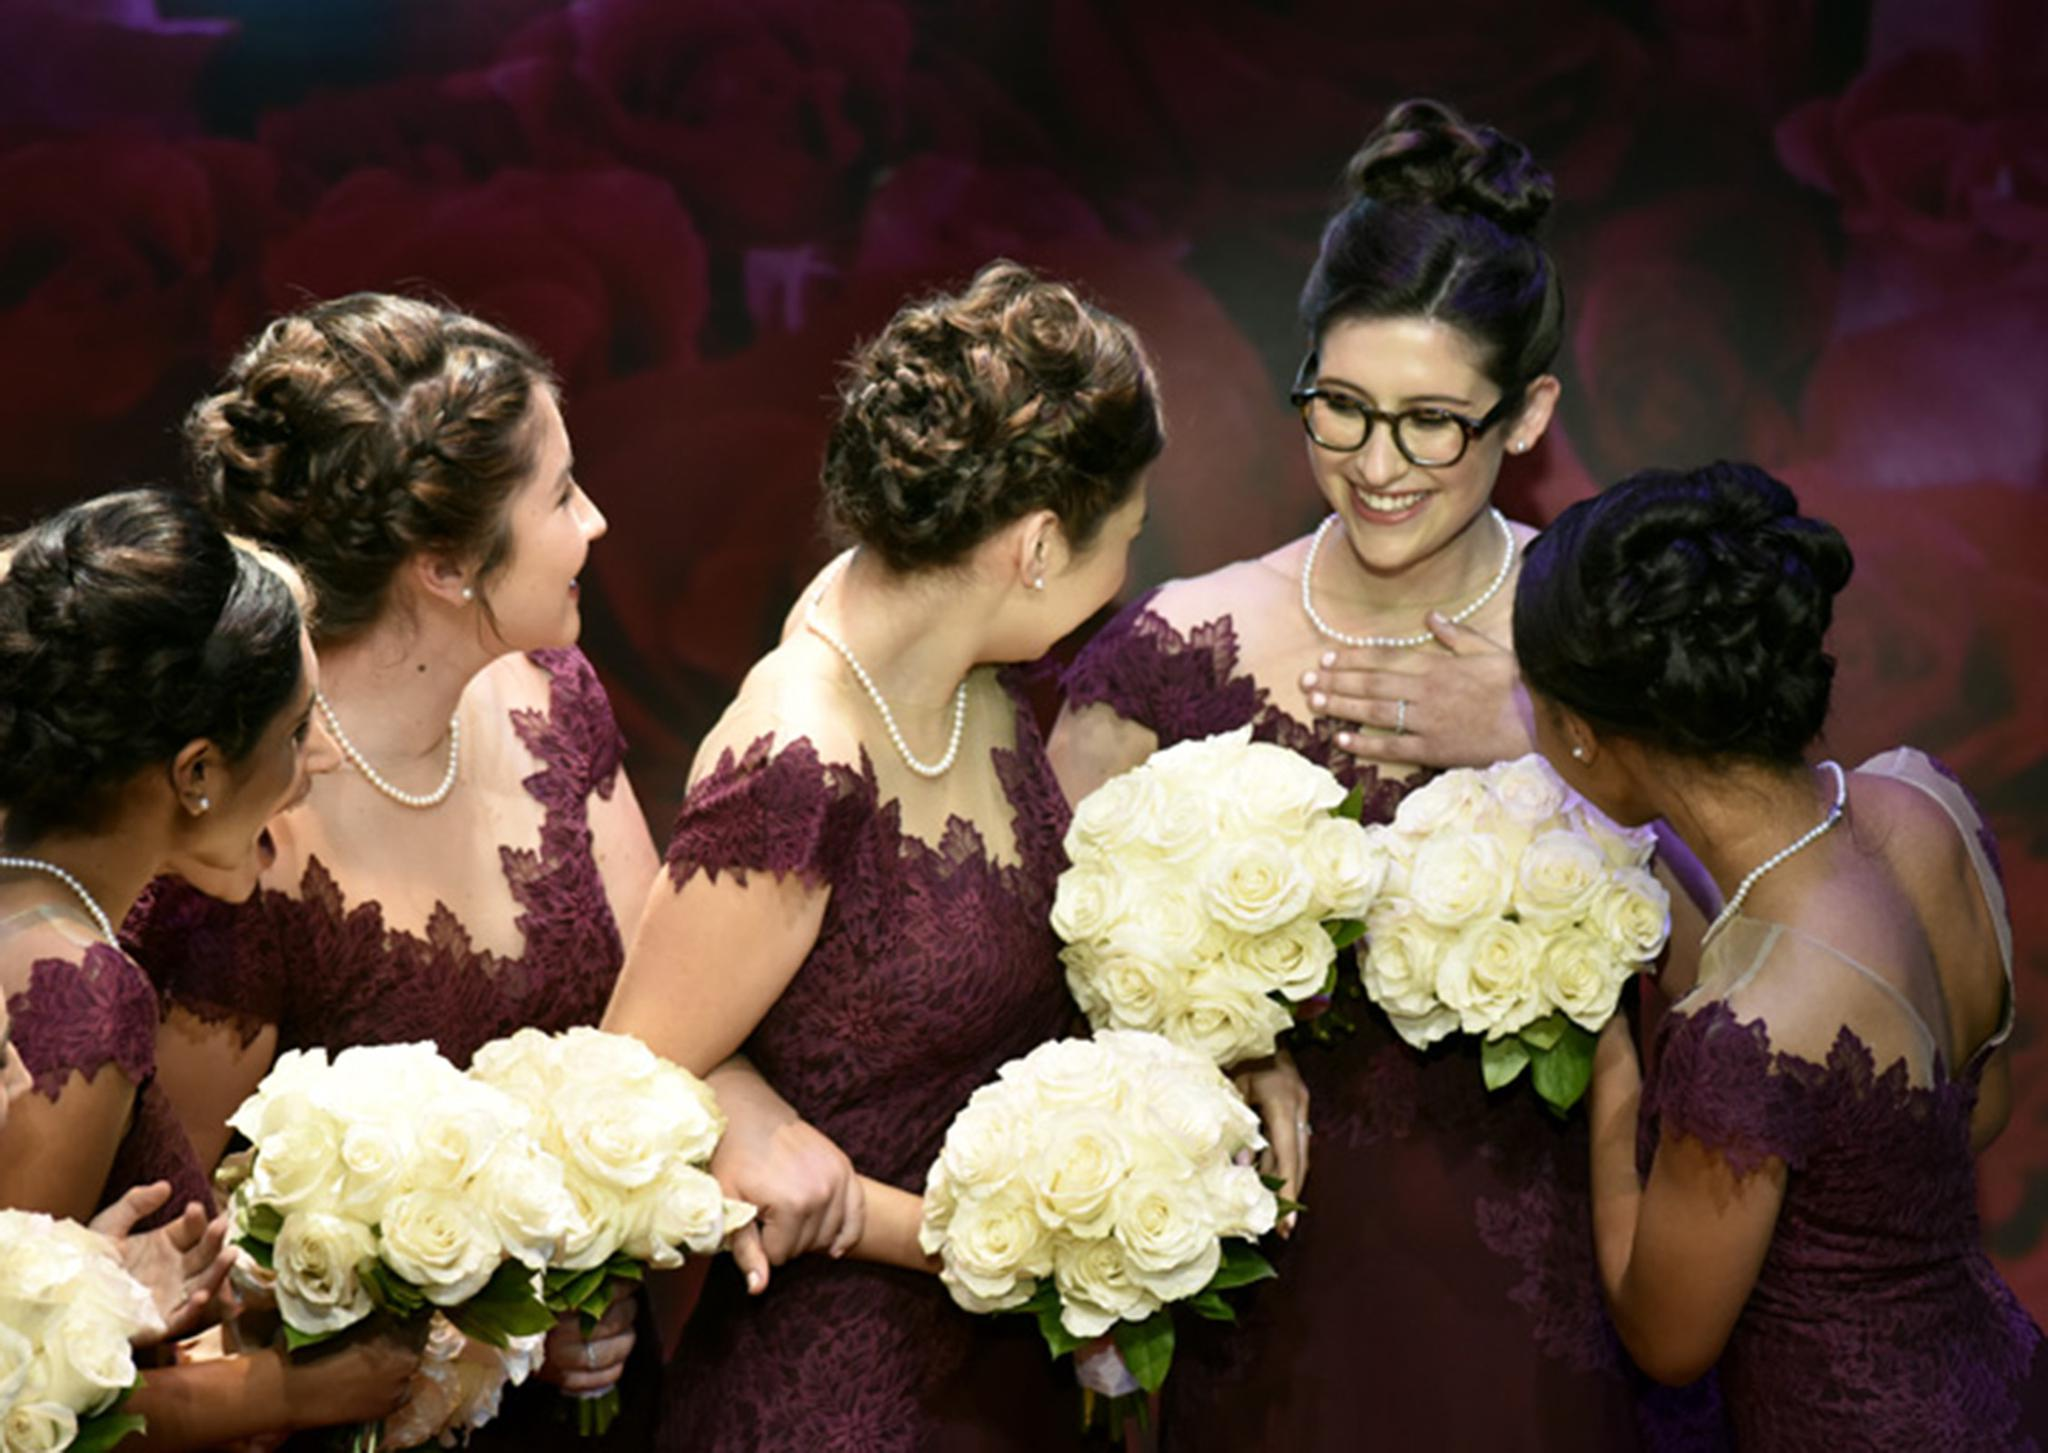 Bisexual bridal party